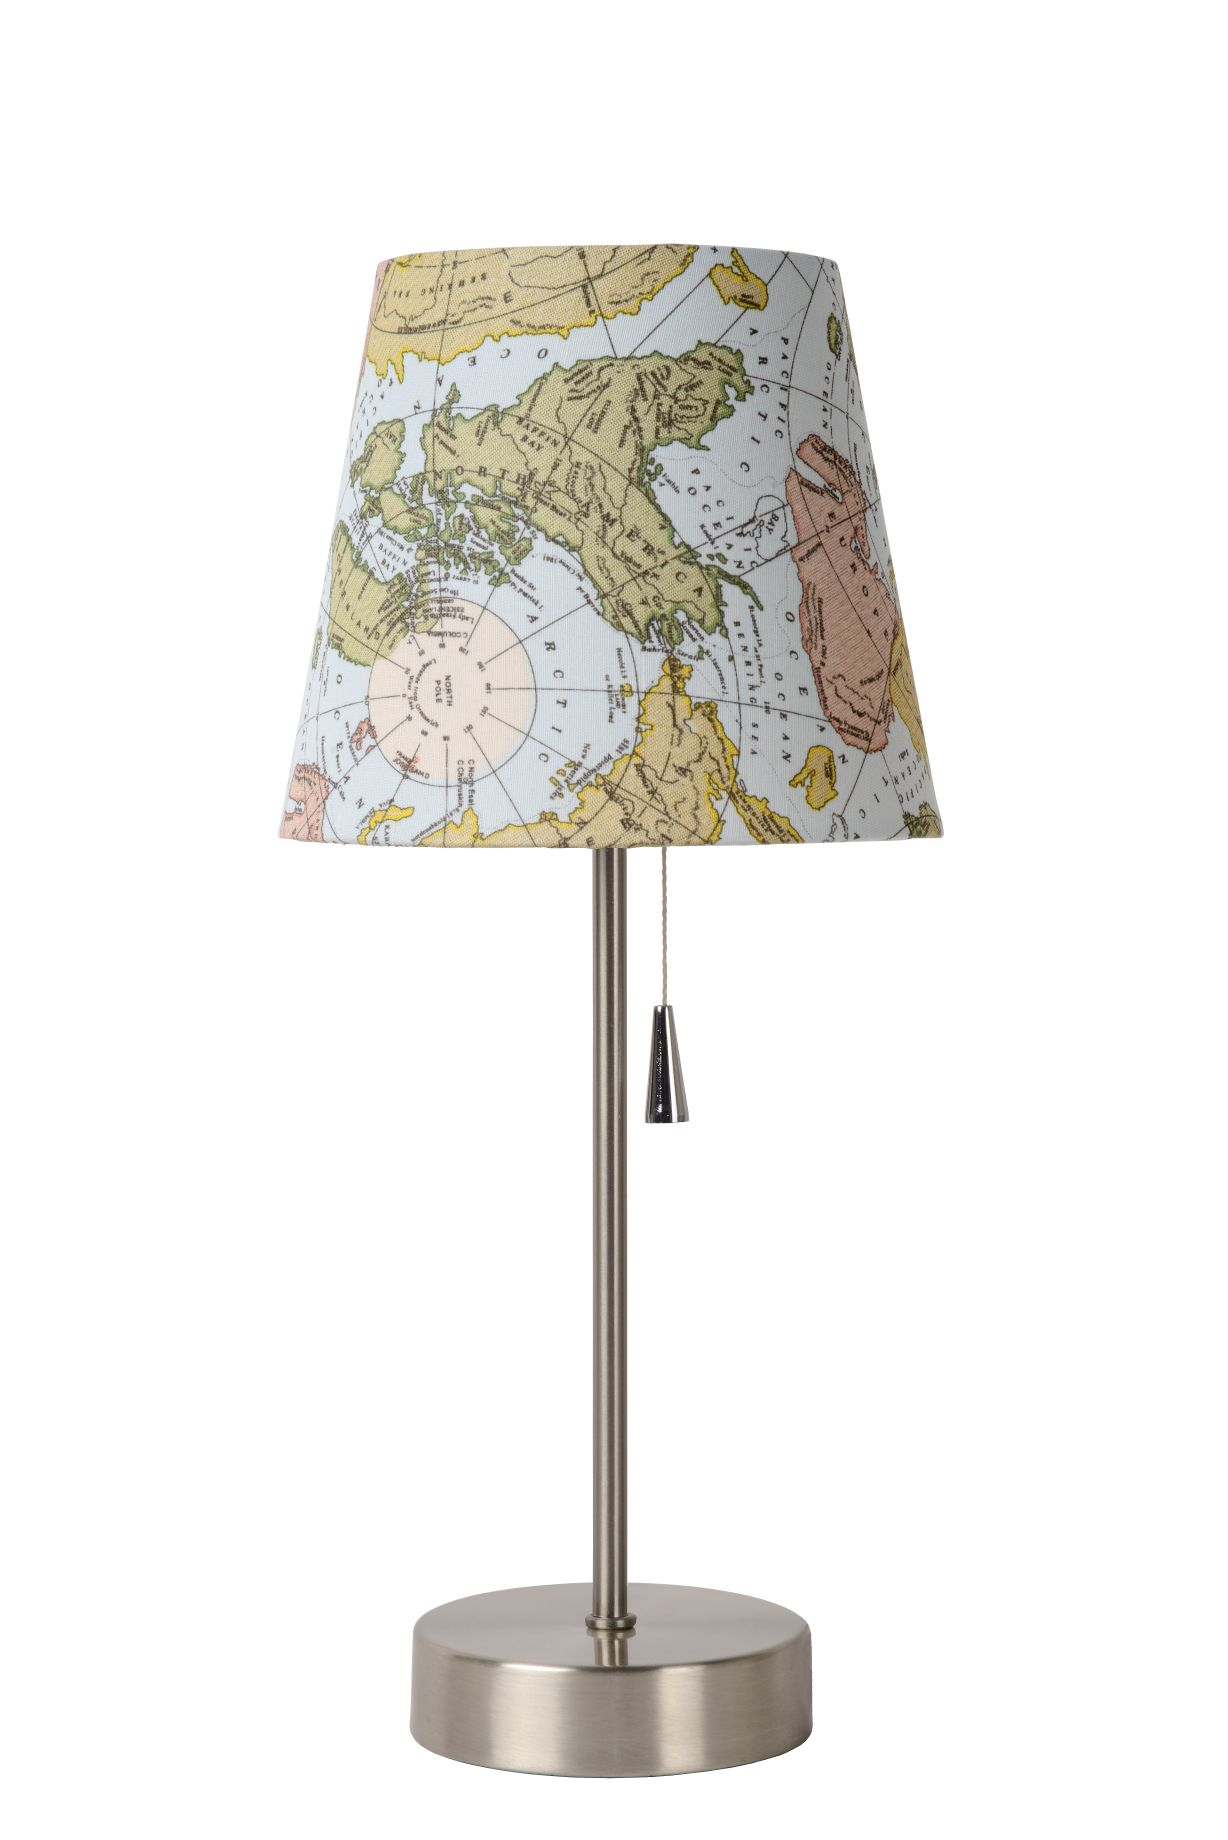 YOKO Table lamp E27 H40.5 Shade 12/18/15 World map